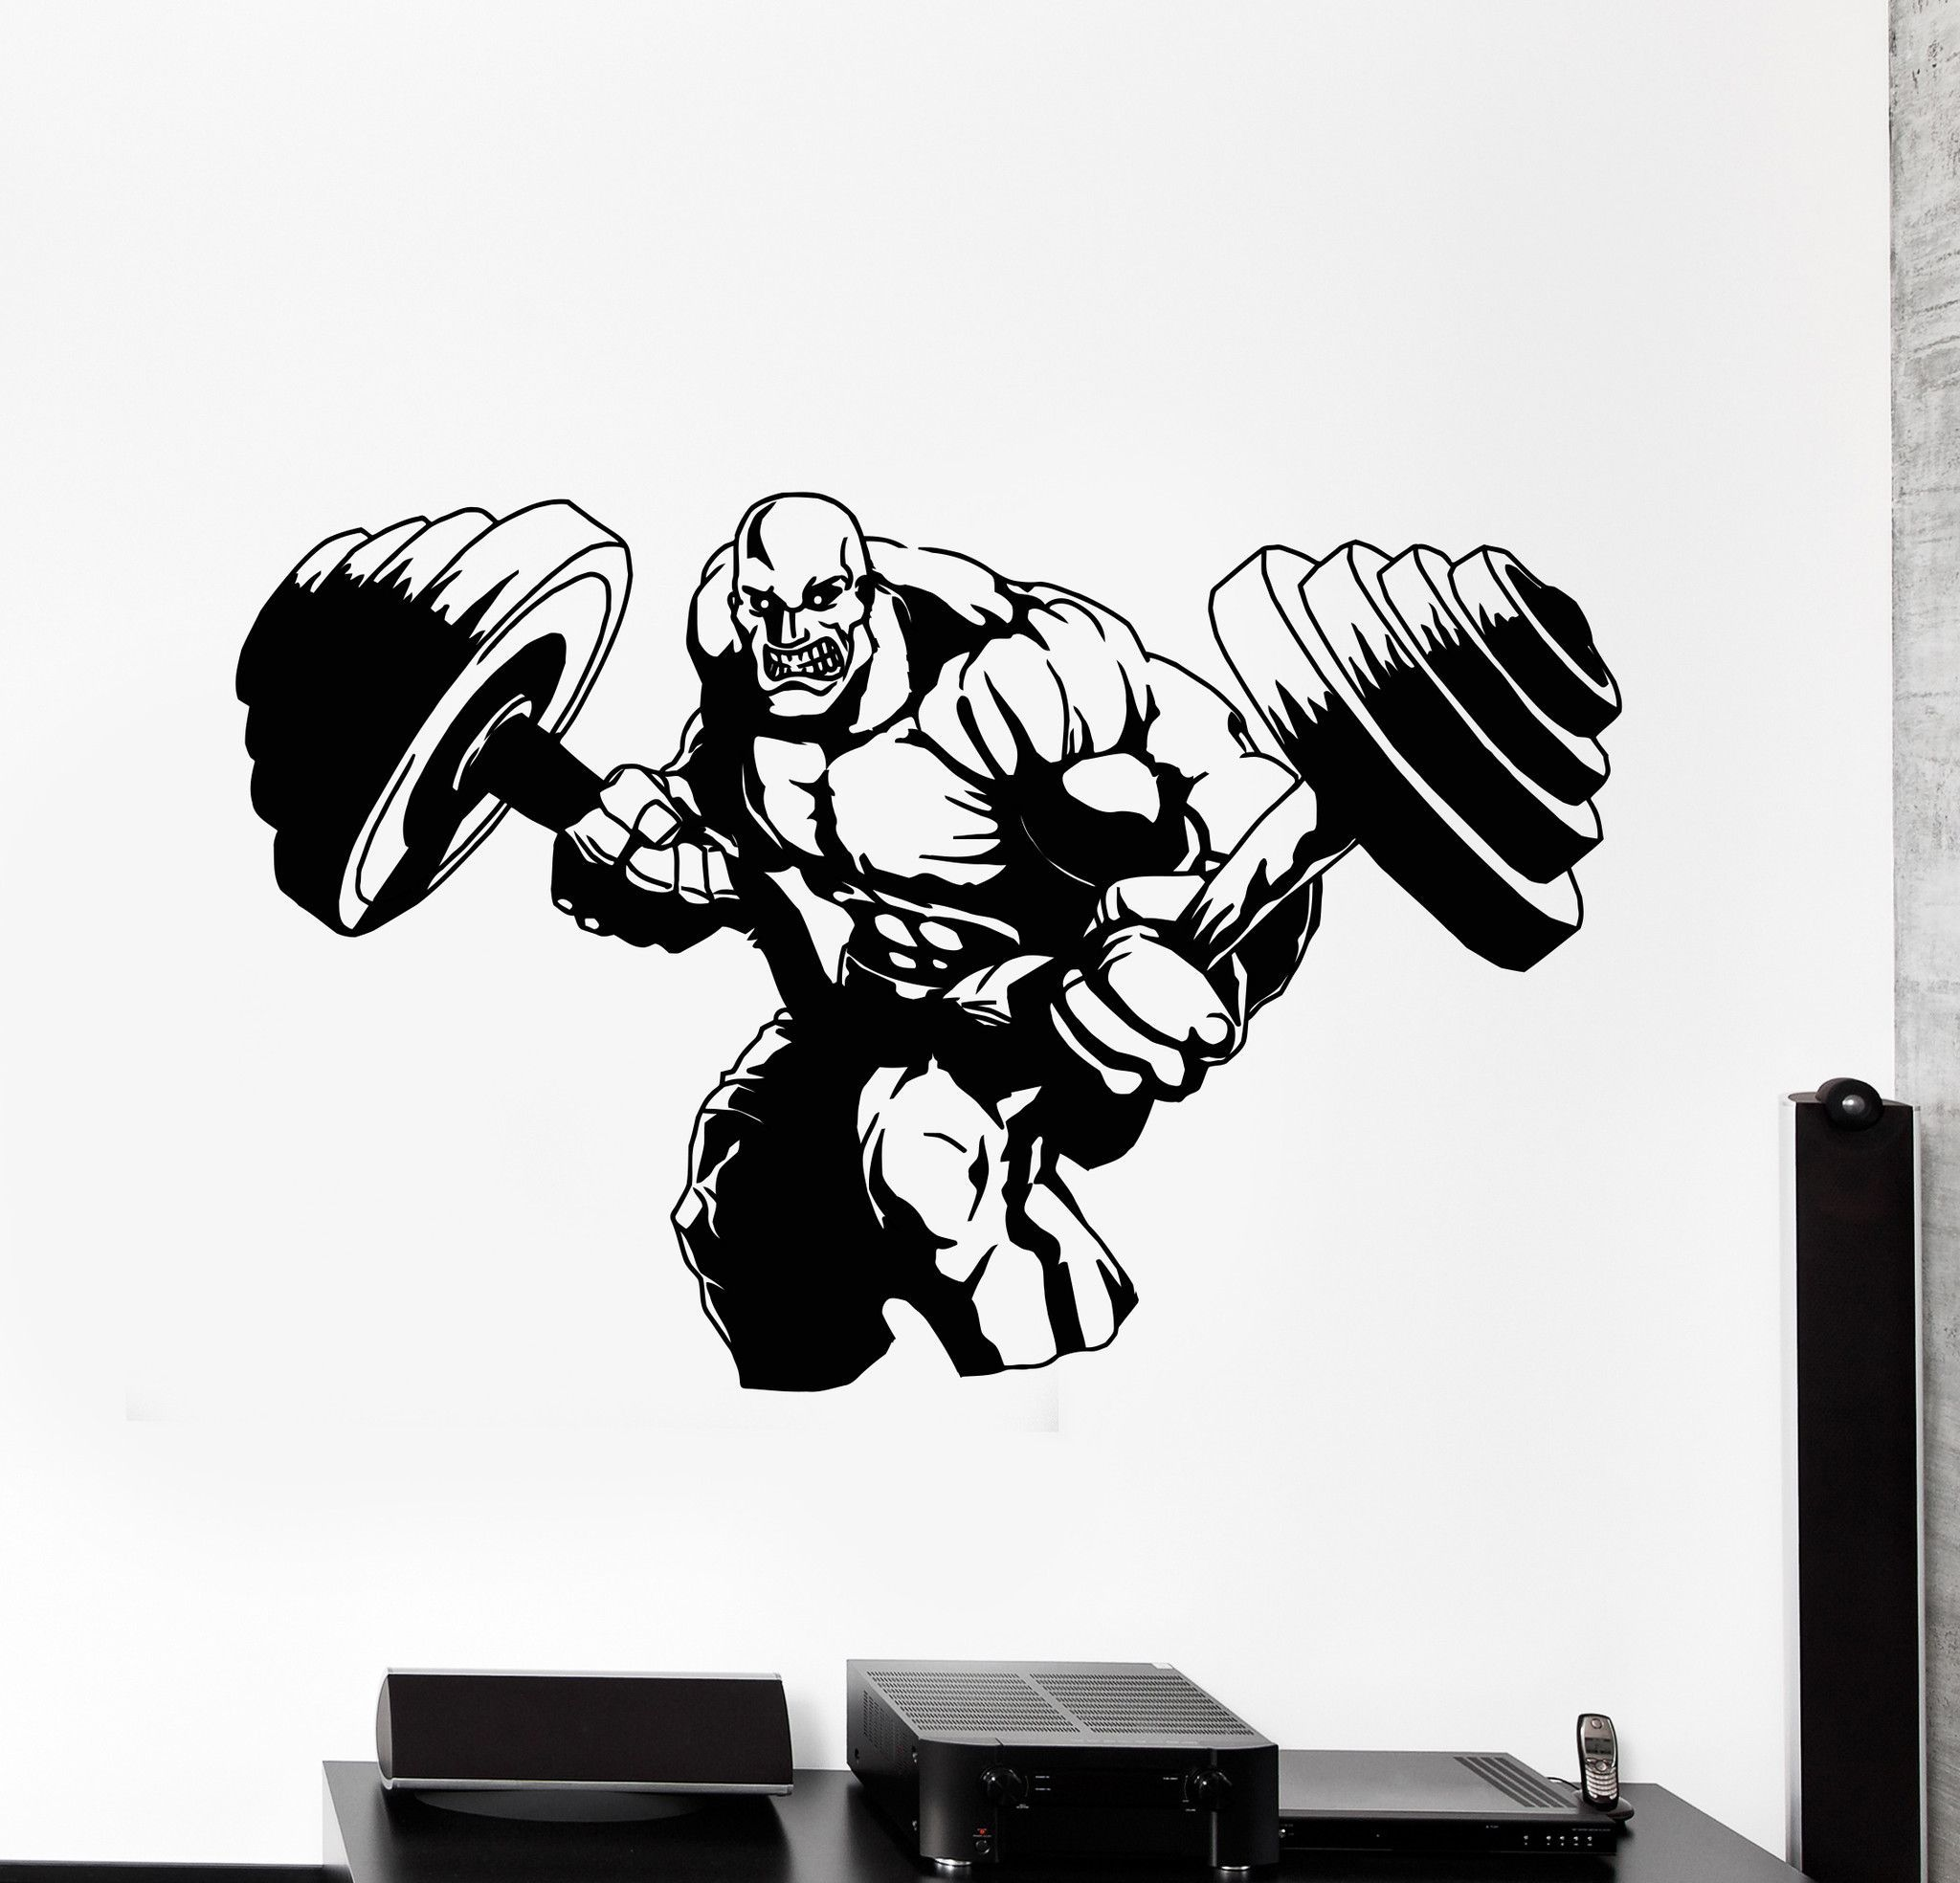 Sticker gym wall - Vinyl Wall Decal Bodybuilding Iron Sport Barbell Gym Muscle Stickers 616ig